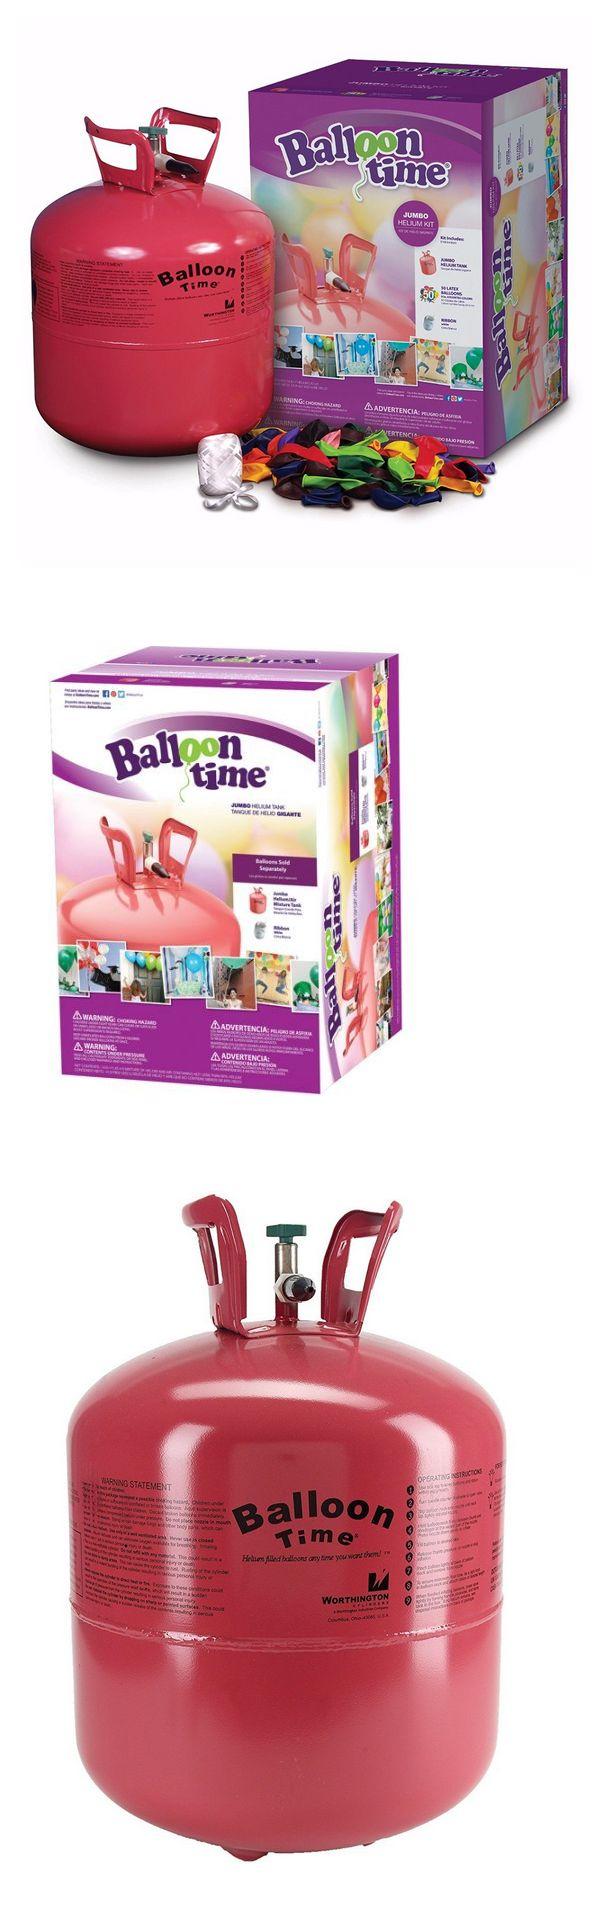 Balloons 26384: Balloon Time Disposable Jumbo Helium Tank, 50 Balloons Included Great Quality -> BUY IT NOW ONLY: $47.99 on eBay!